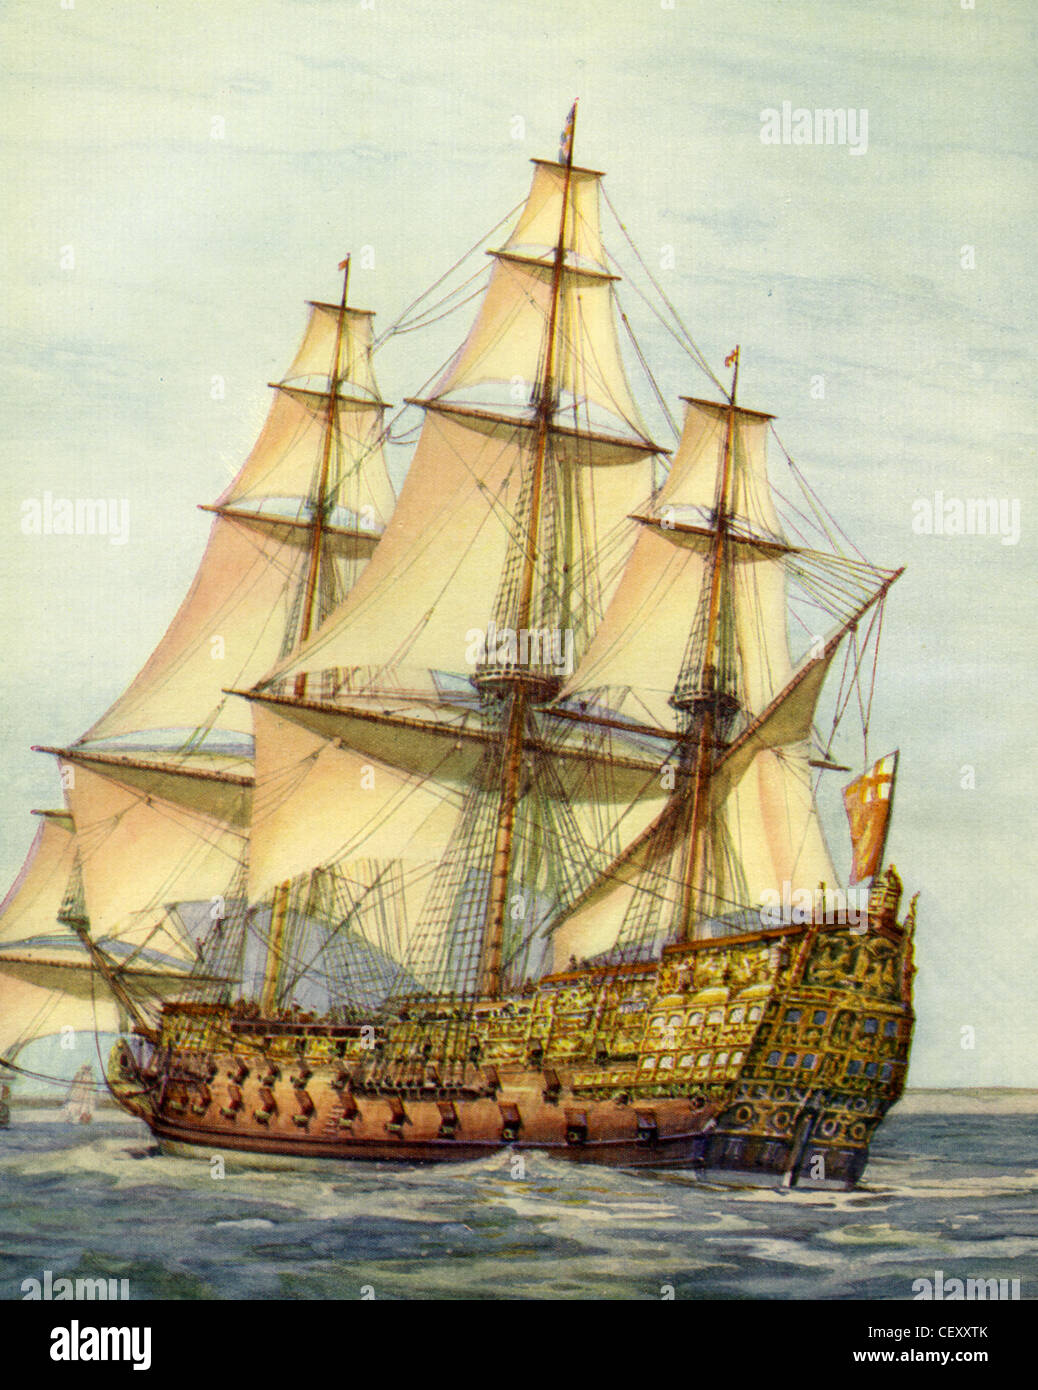 HMS ROYAL SOVEREIGN (1638-1697) gemalt von Marine-Historiker Gregory Robinson Stockbild